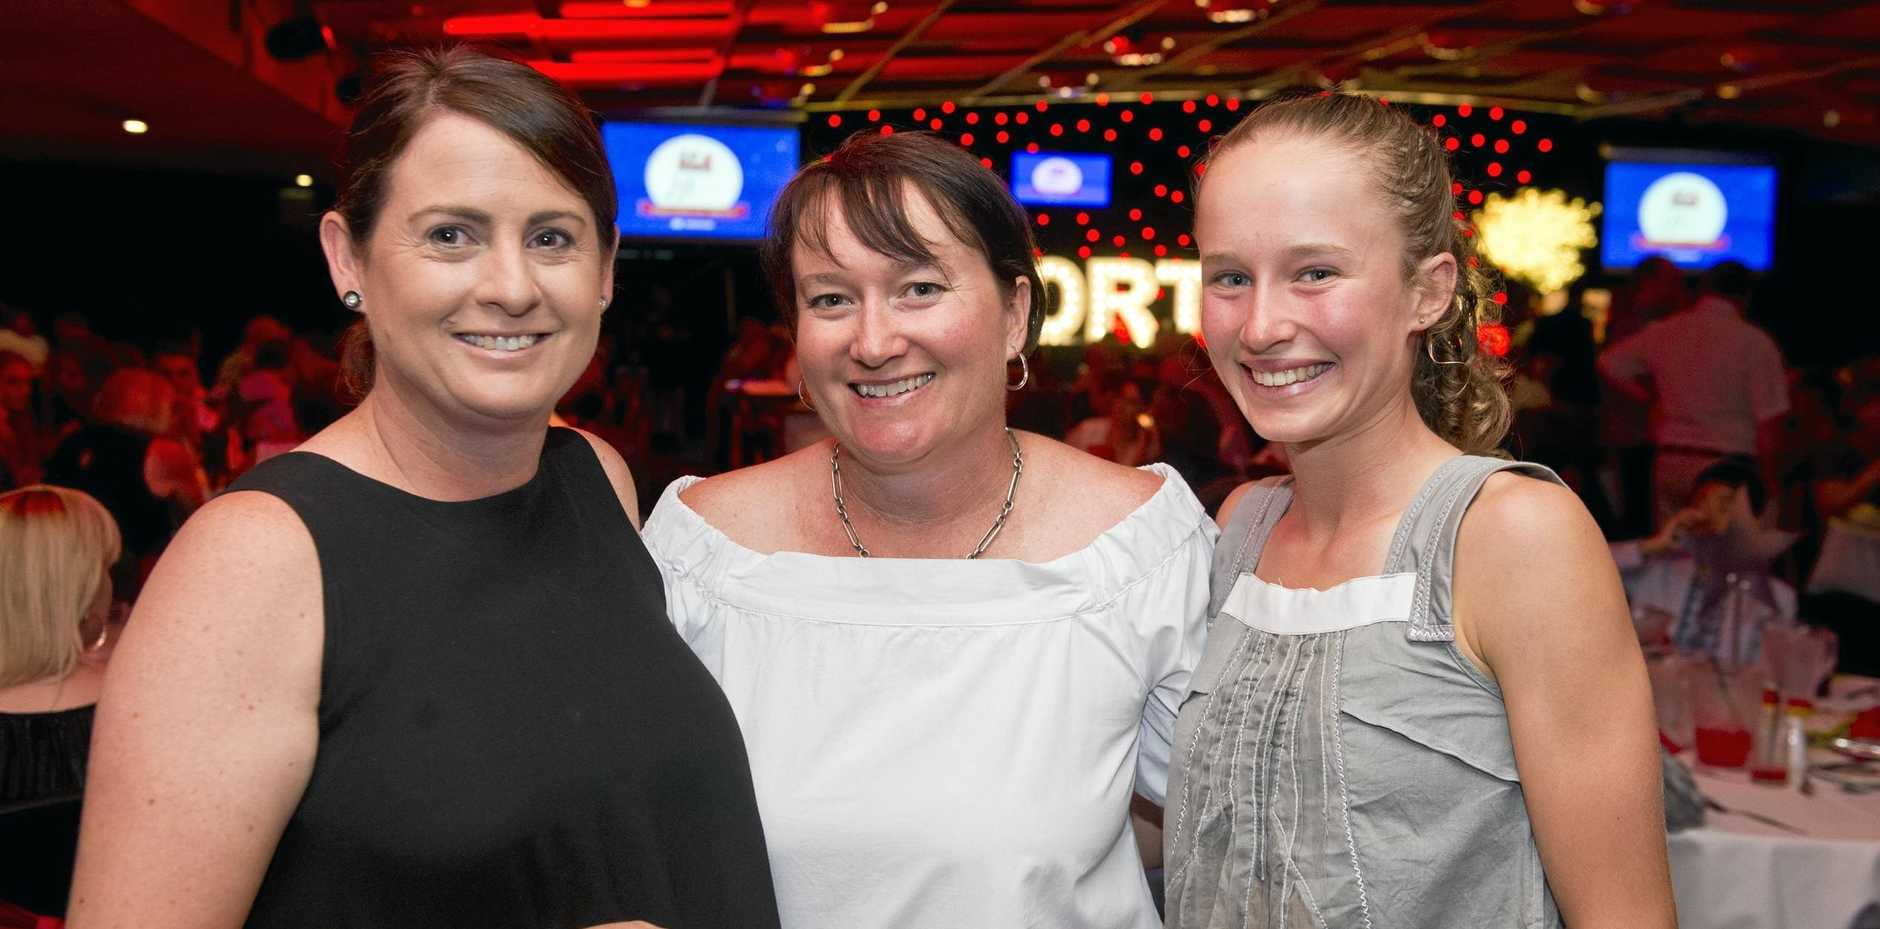 AWARD NIGHT: Enjoying the annual Sports Darling Downs award night are (from left) Jenny Anderson, Jody Erbacher and Brielle Erbacher.